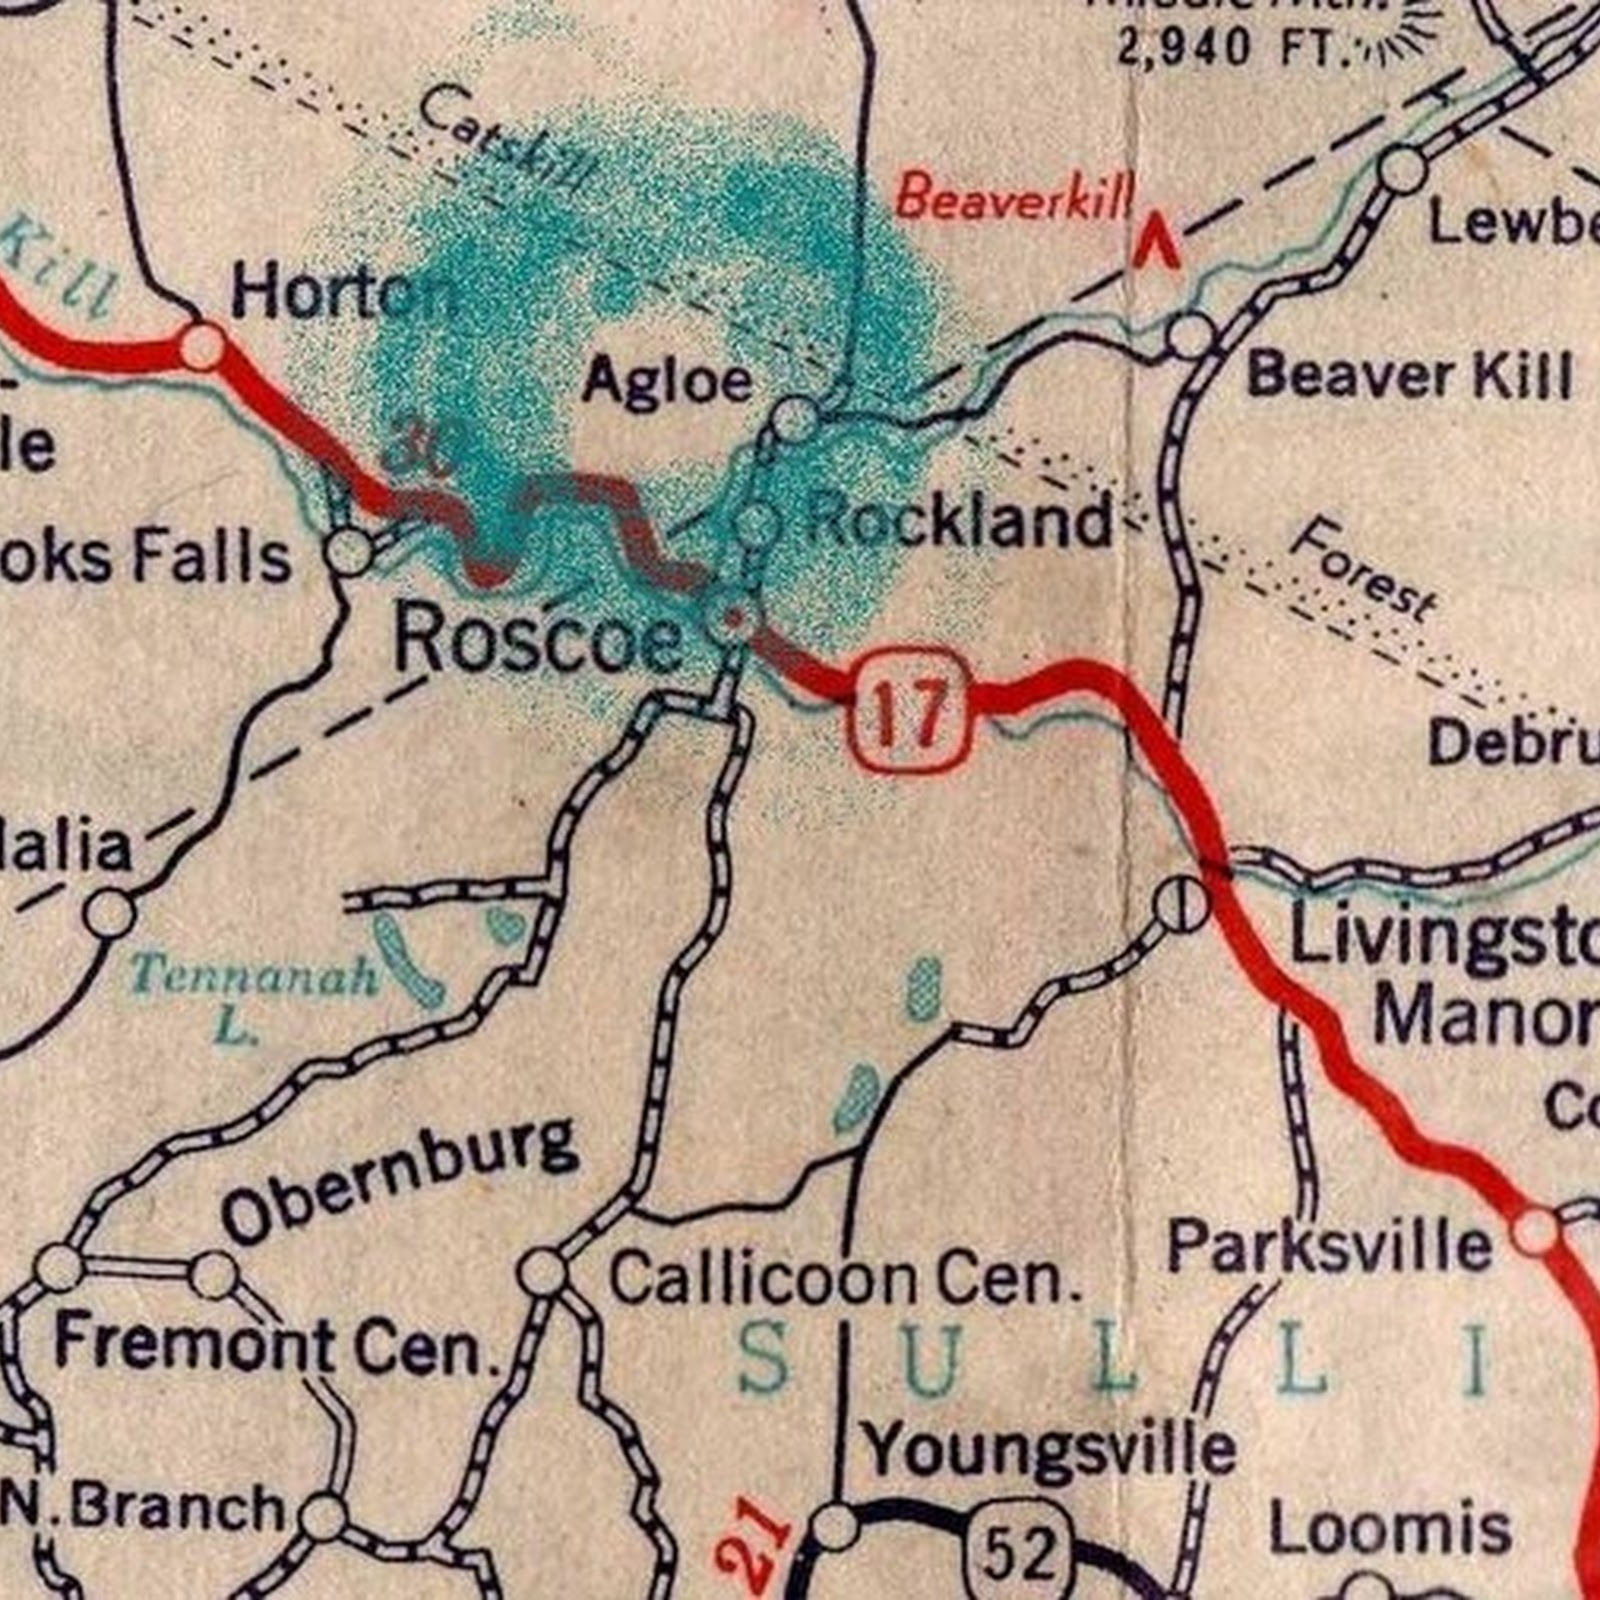 Agloe: A Fake Town That Became Real